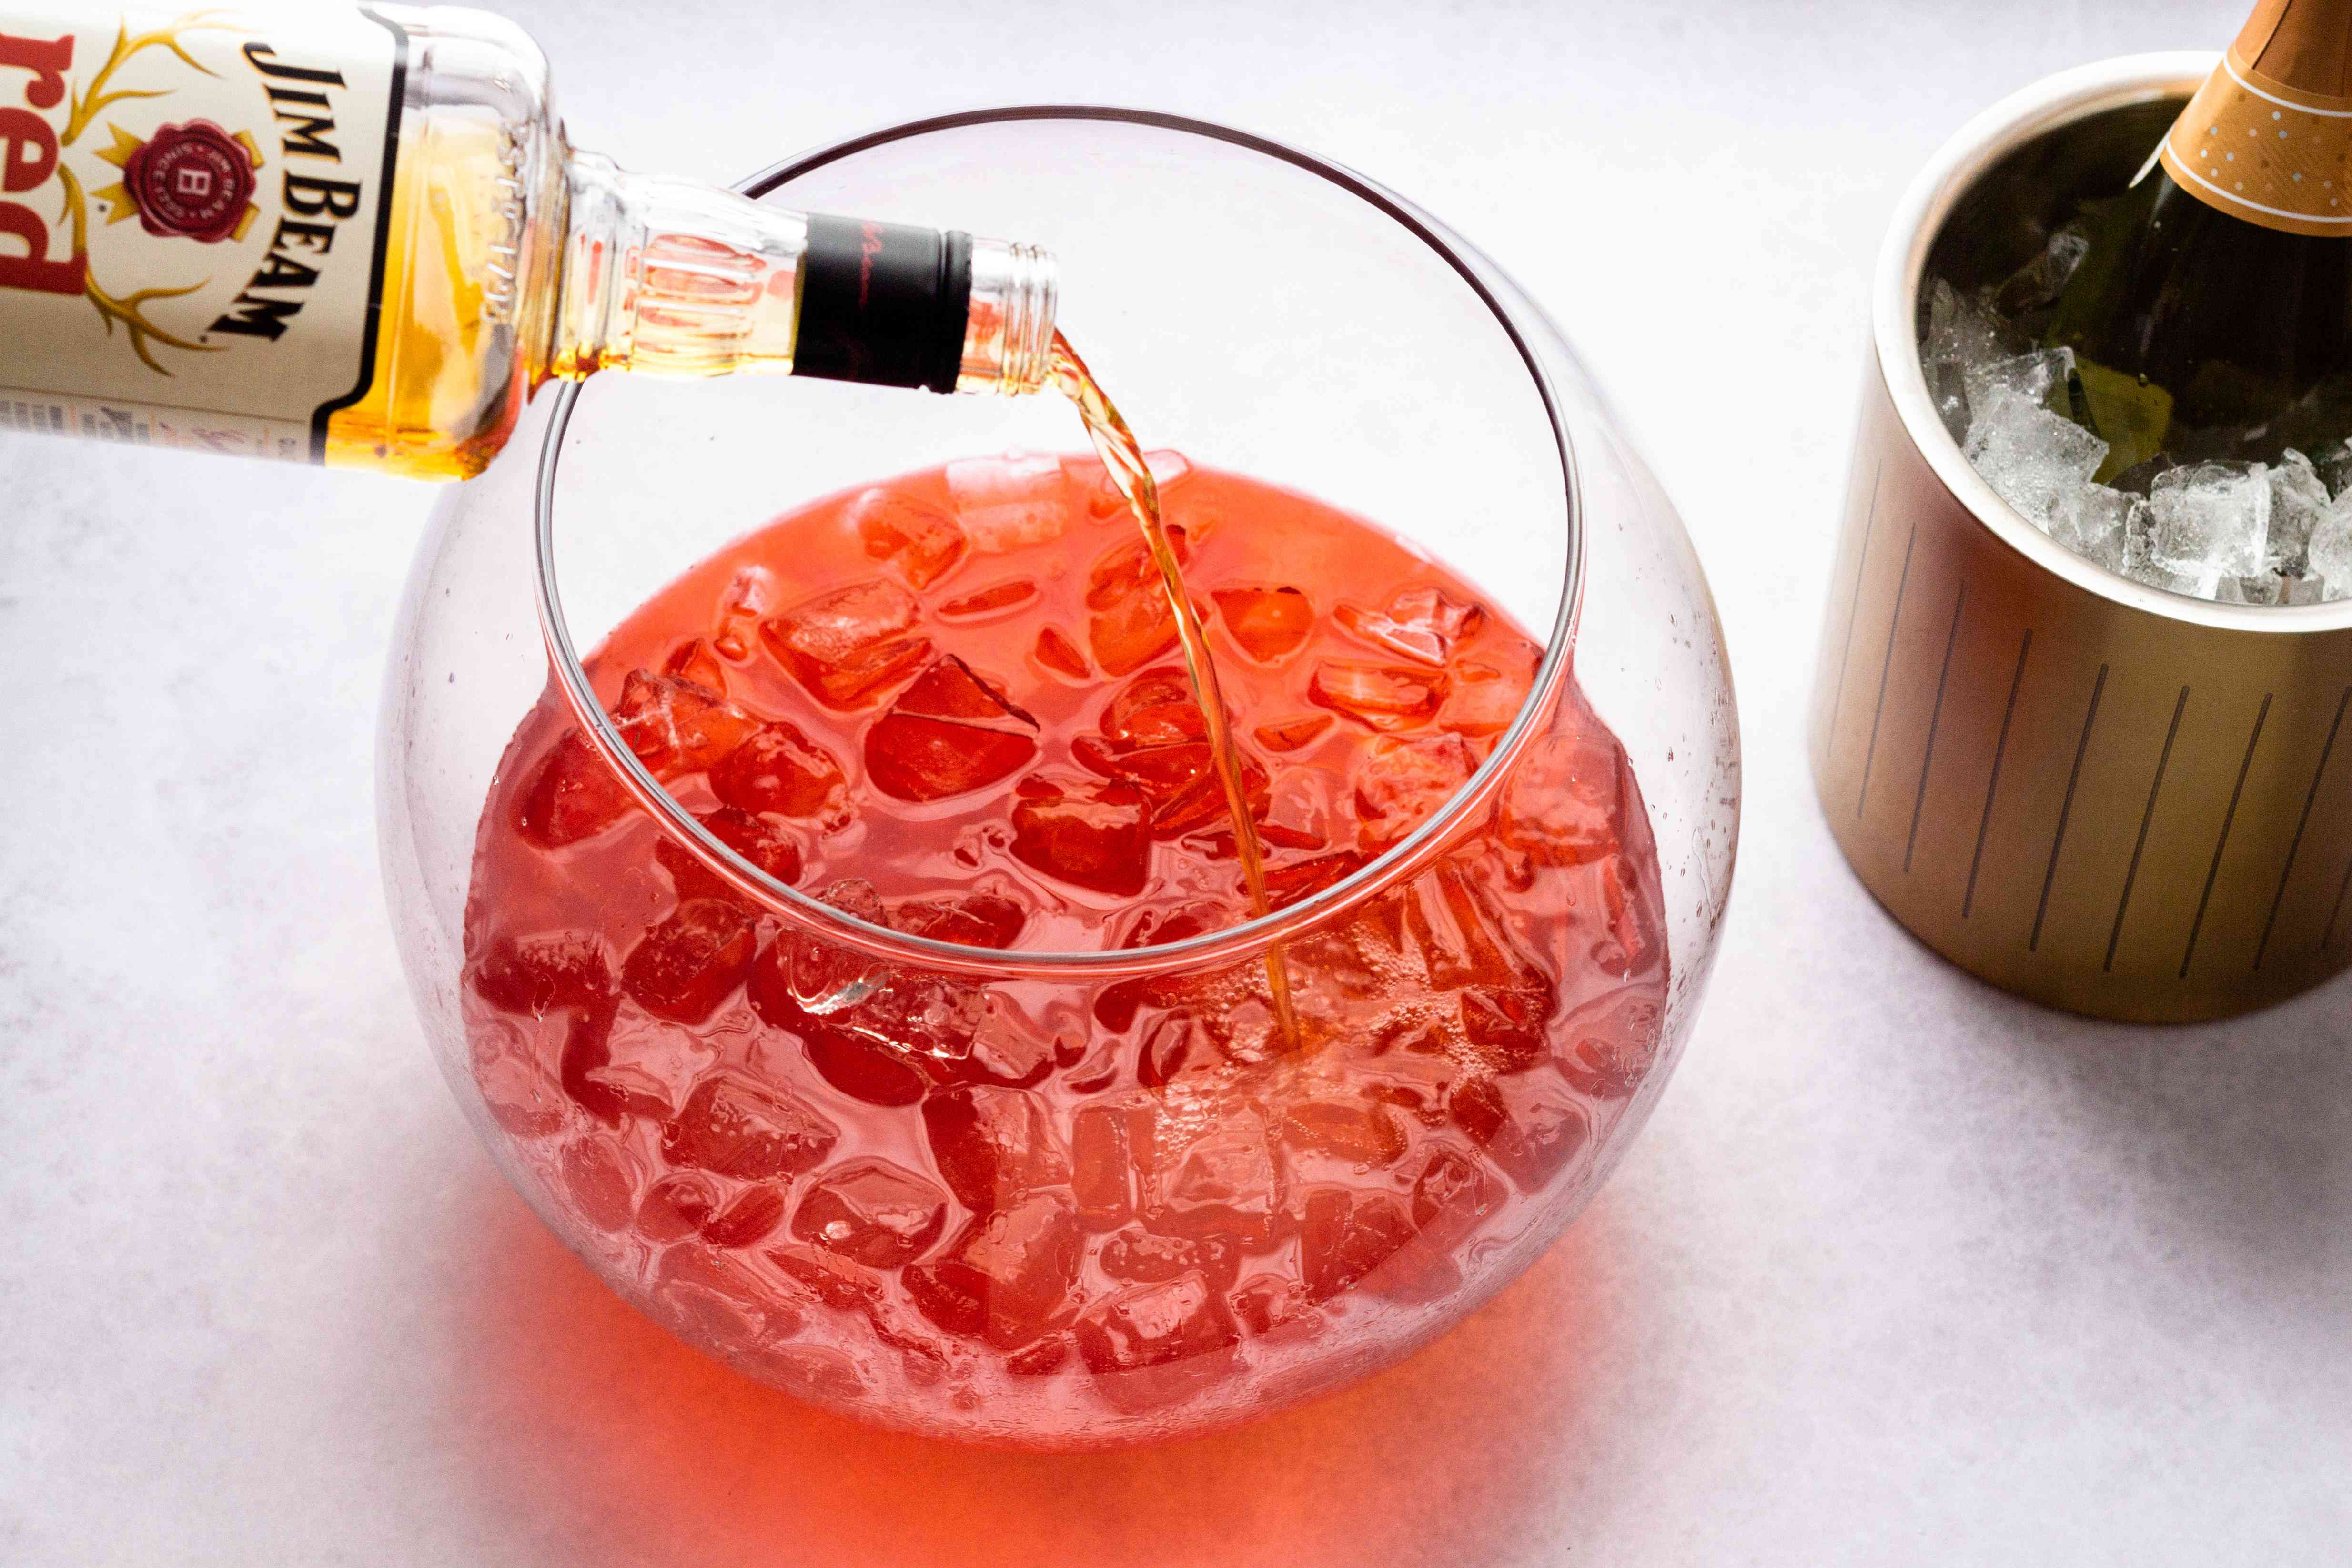 Pour the cherry whiskey, strawberry liqueur, and passion fruit into a punch bowl with plenty of ice